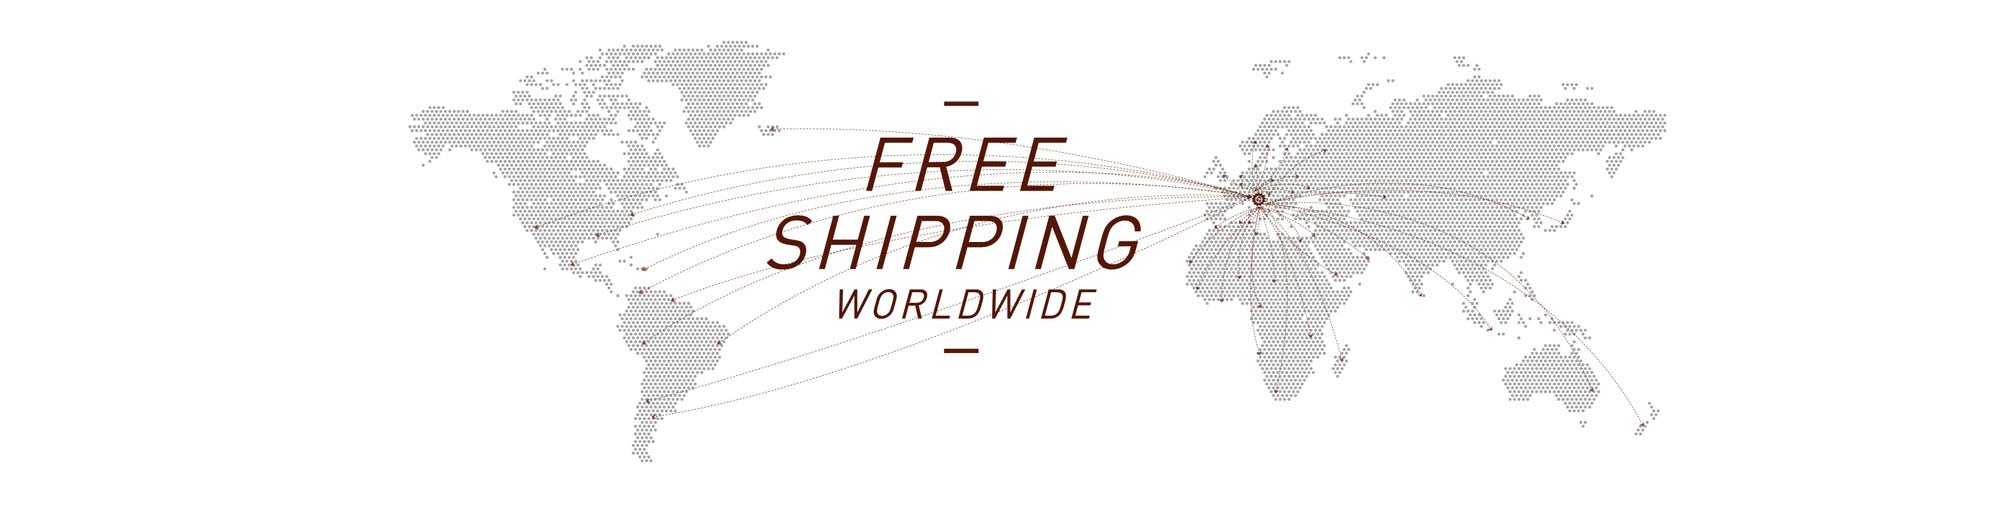 Free_shipping-cycled-home